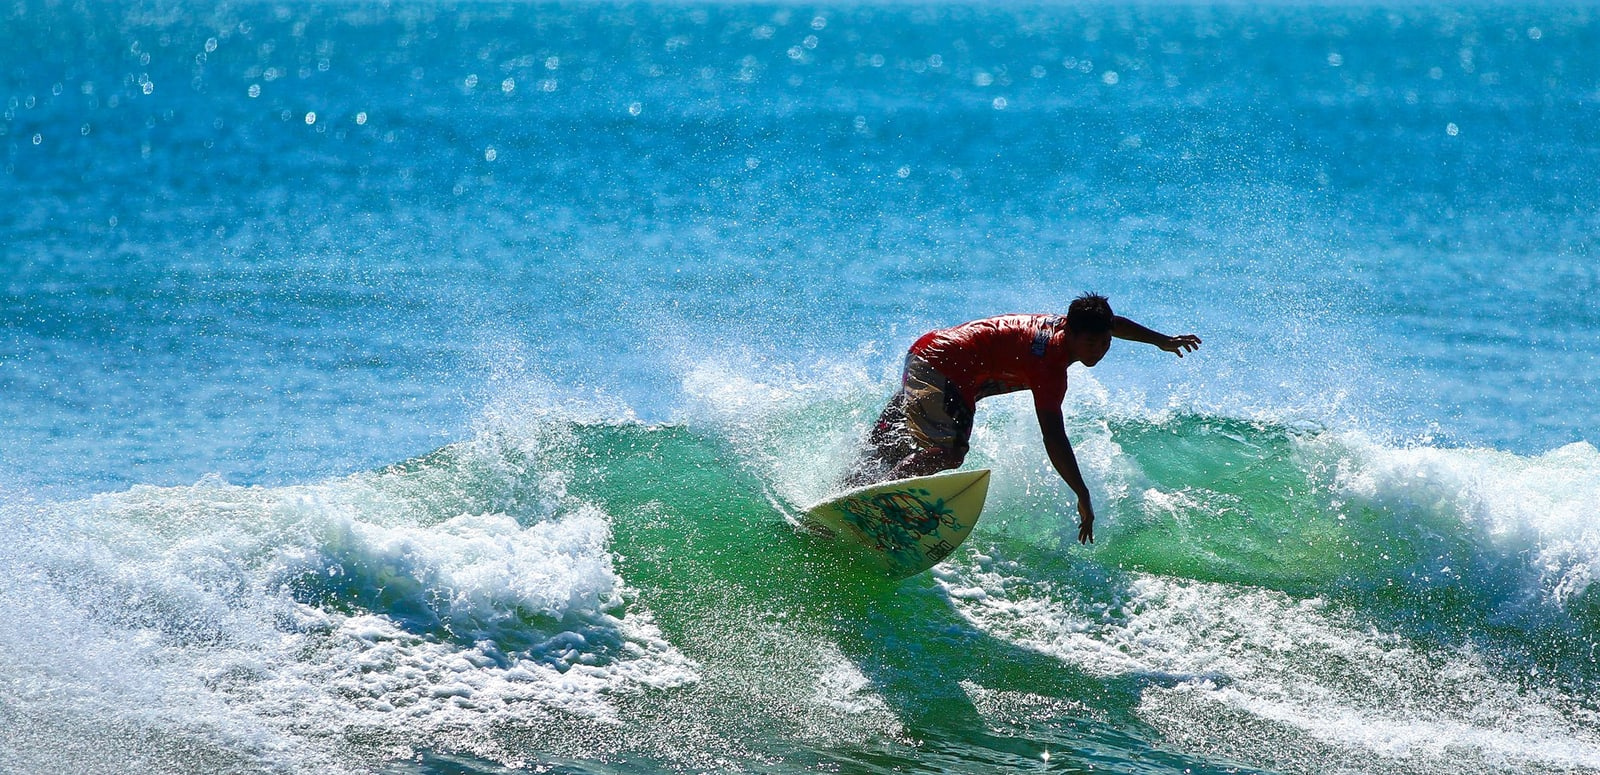 1491994549_kuta_indonesia_surfer.jpg